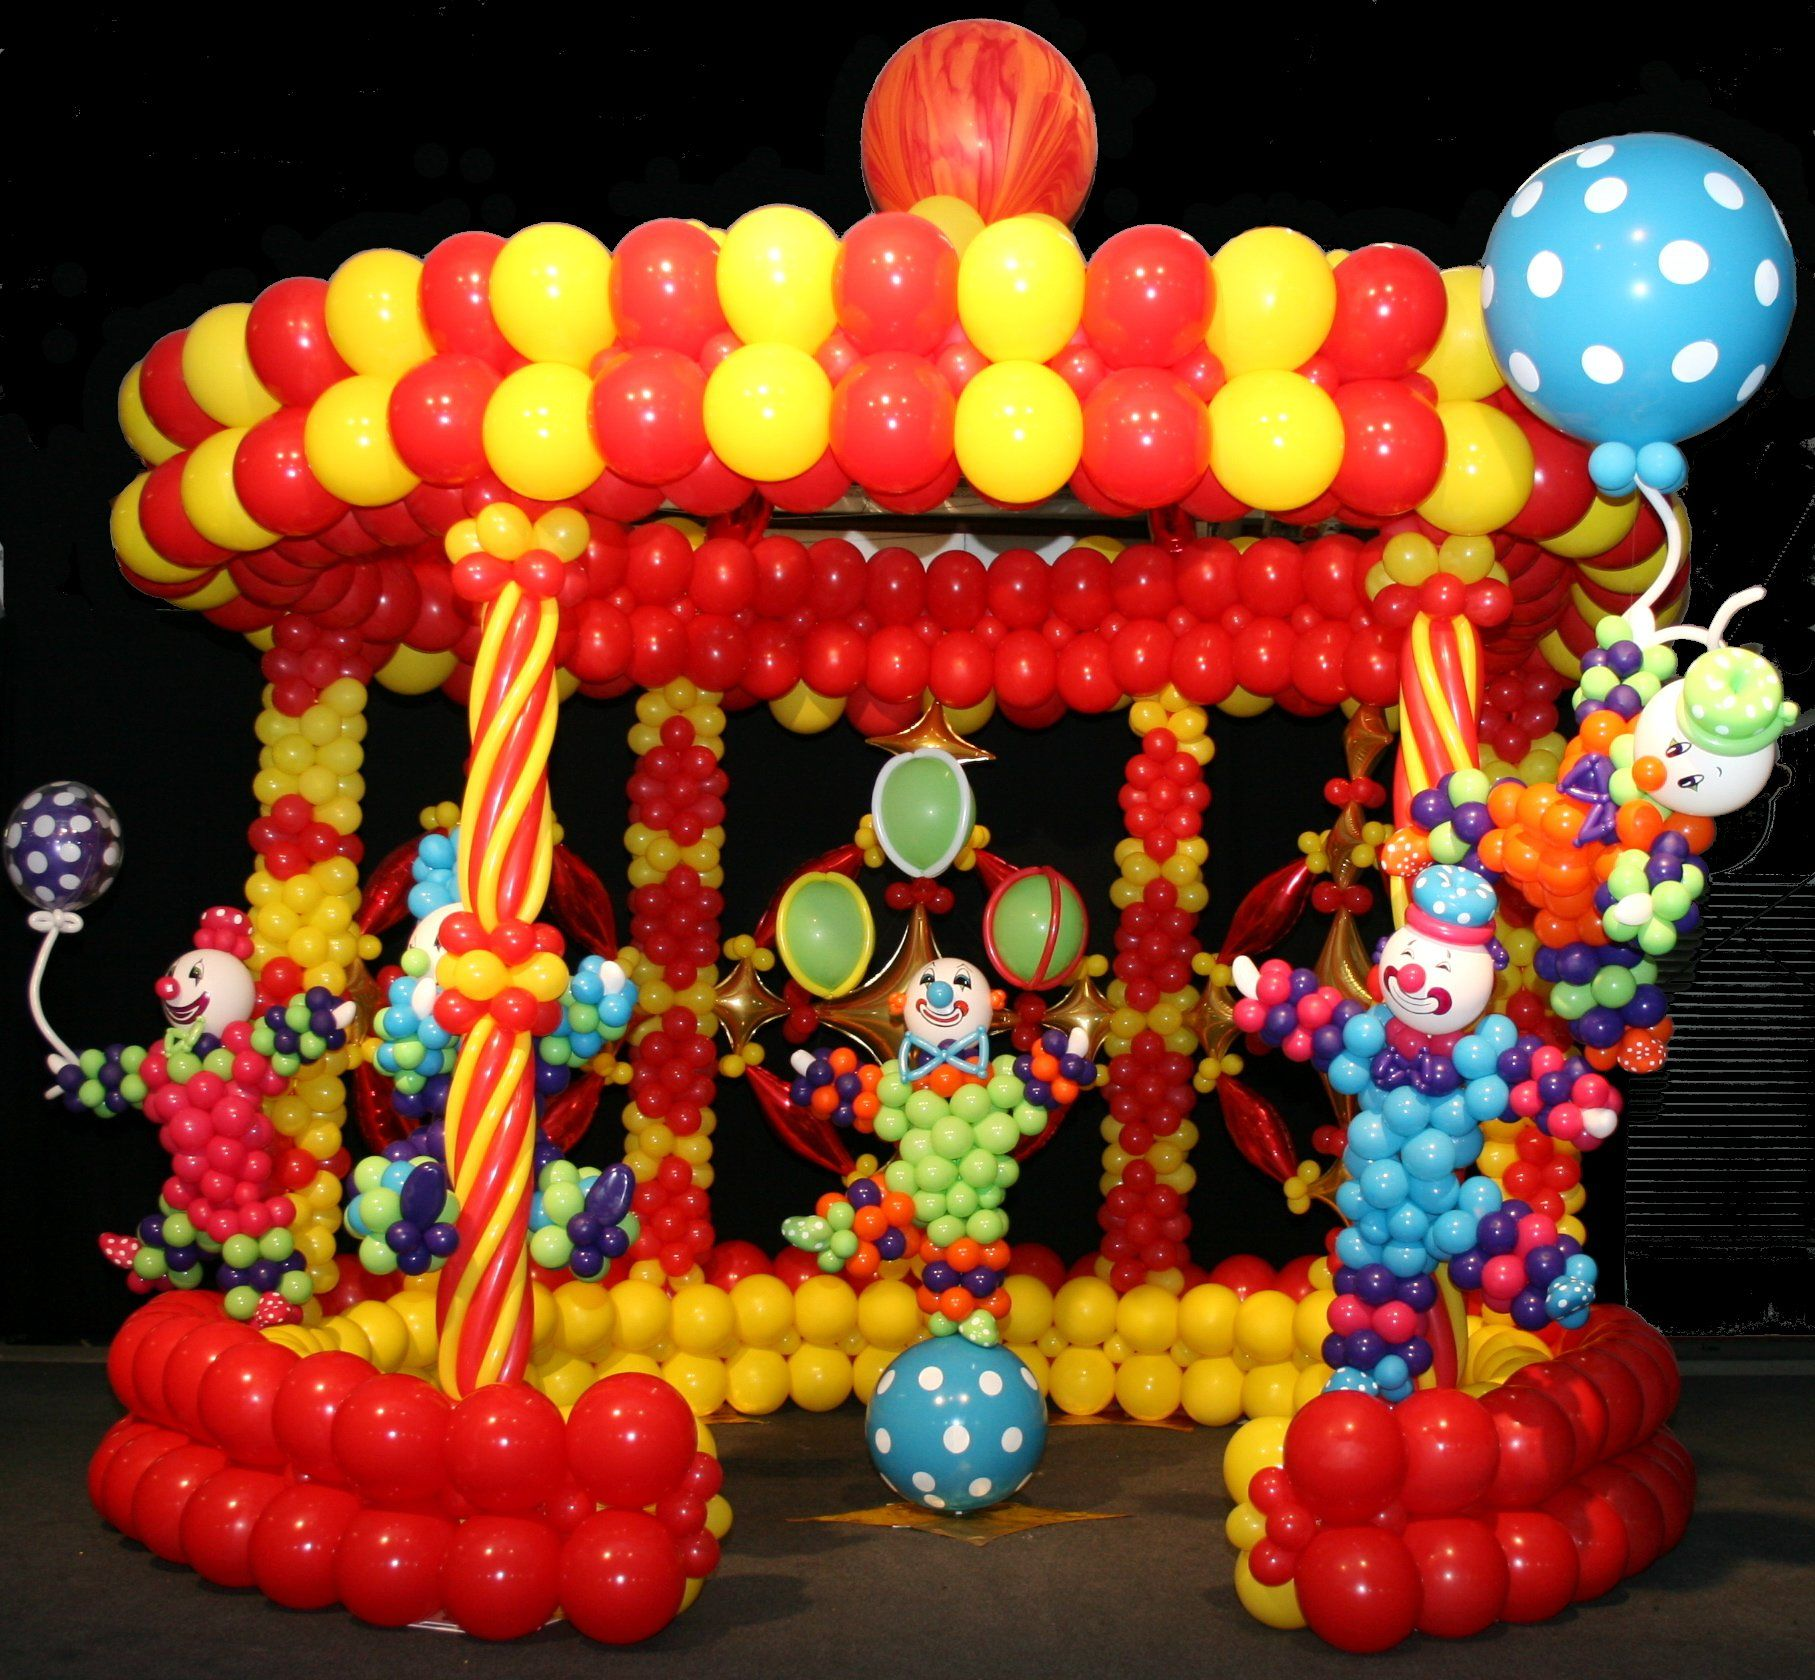 Balloon sculpture ideas home sue bowler dvd 39 s shop for Birthday balloon ideas